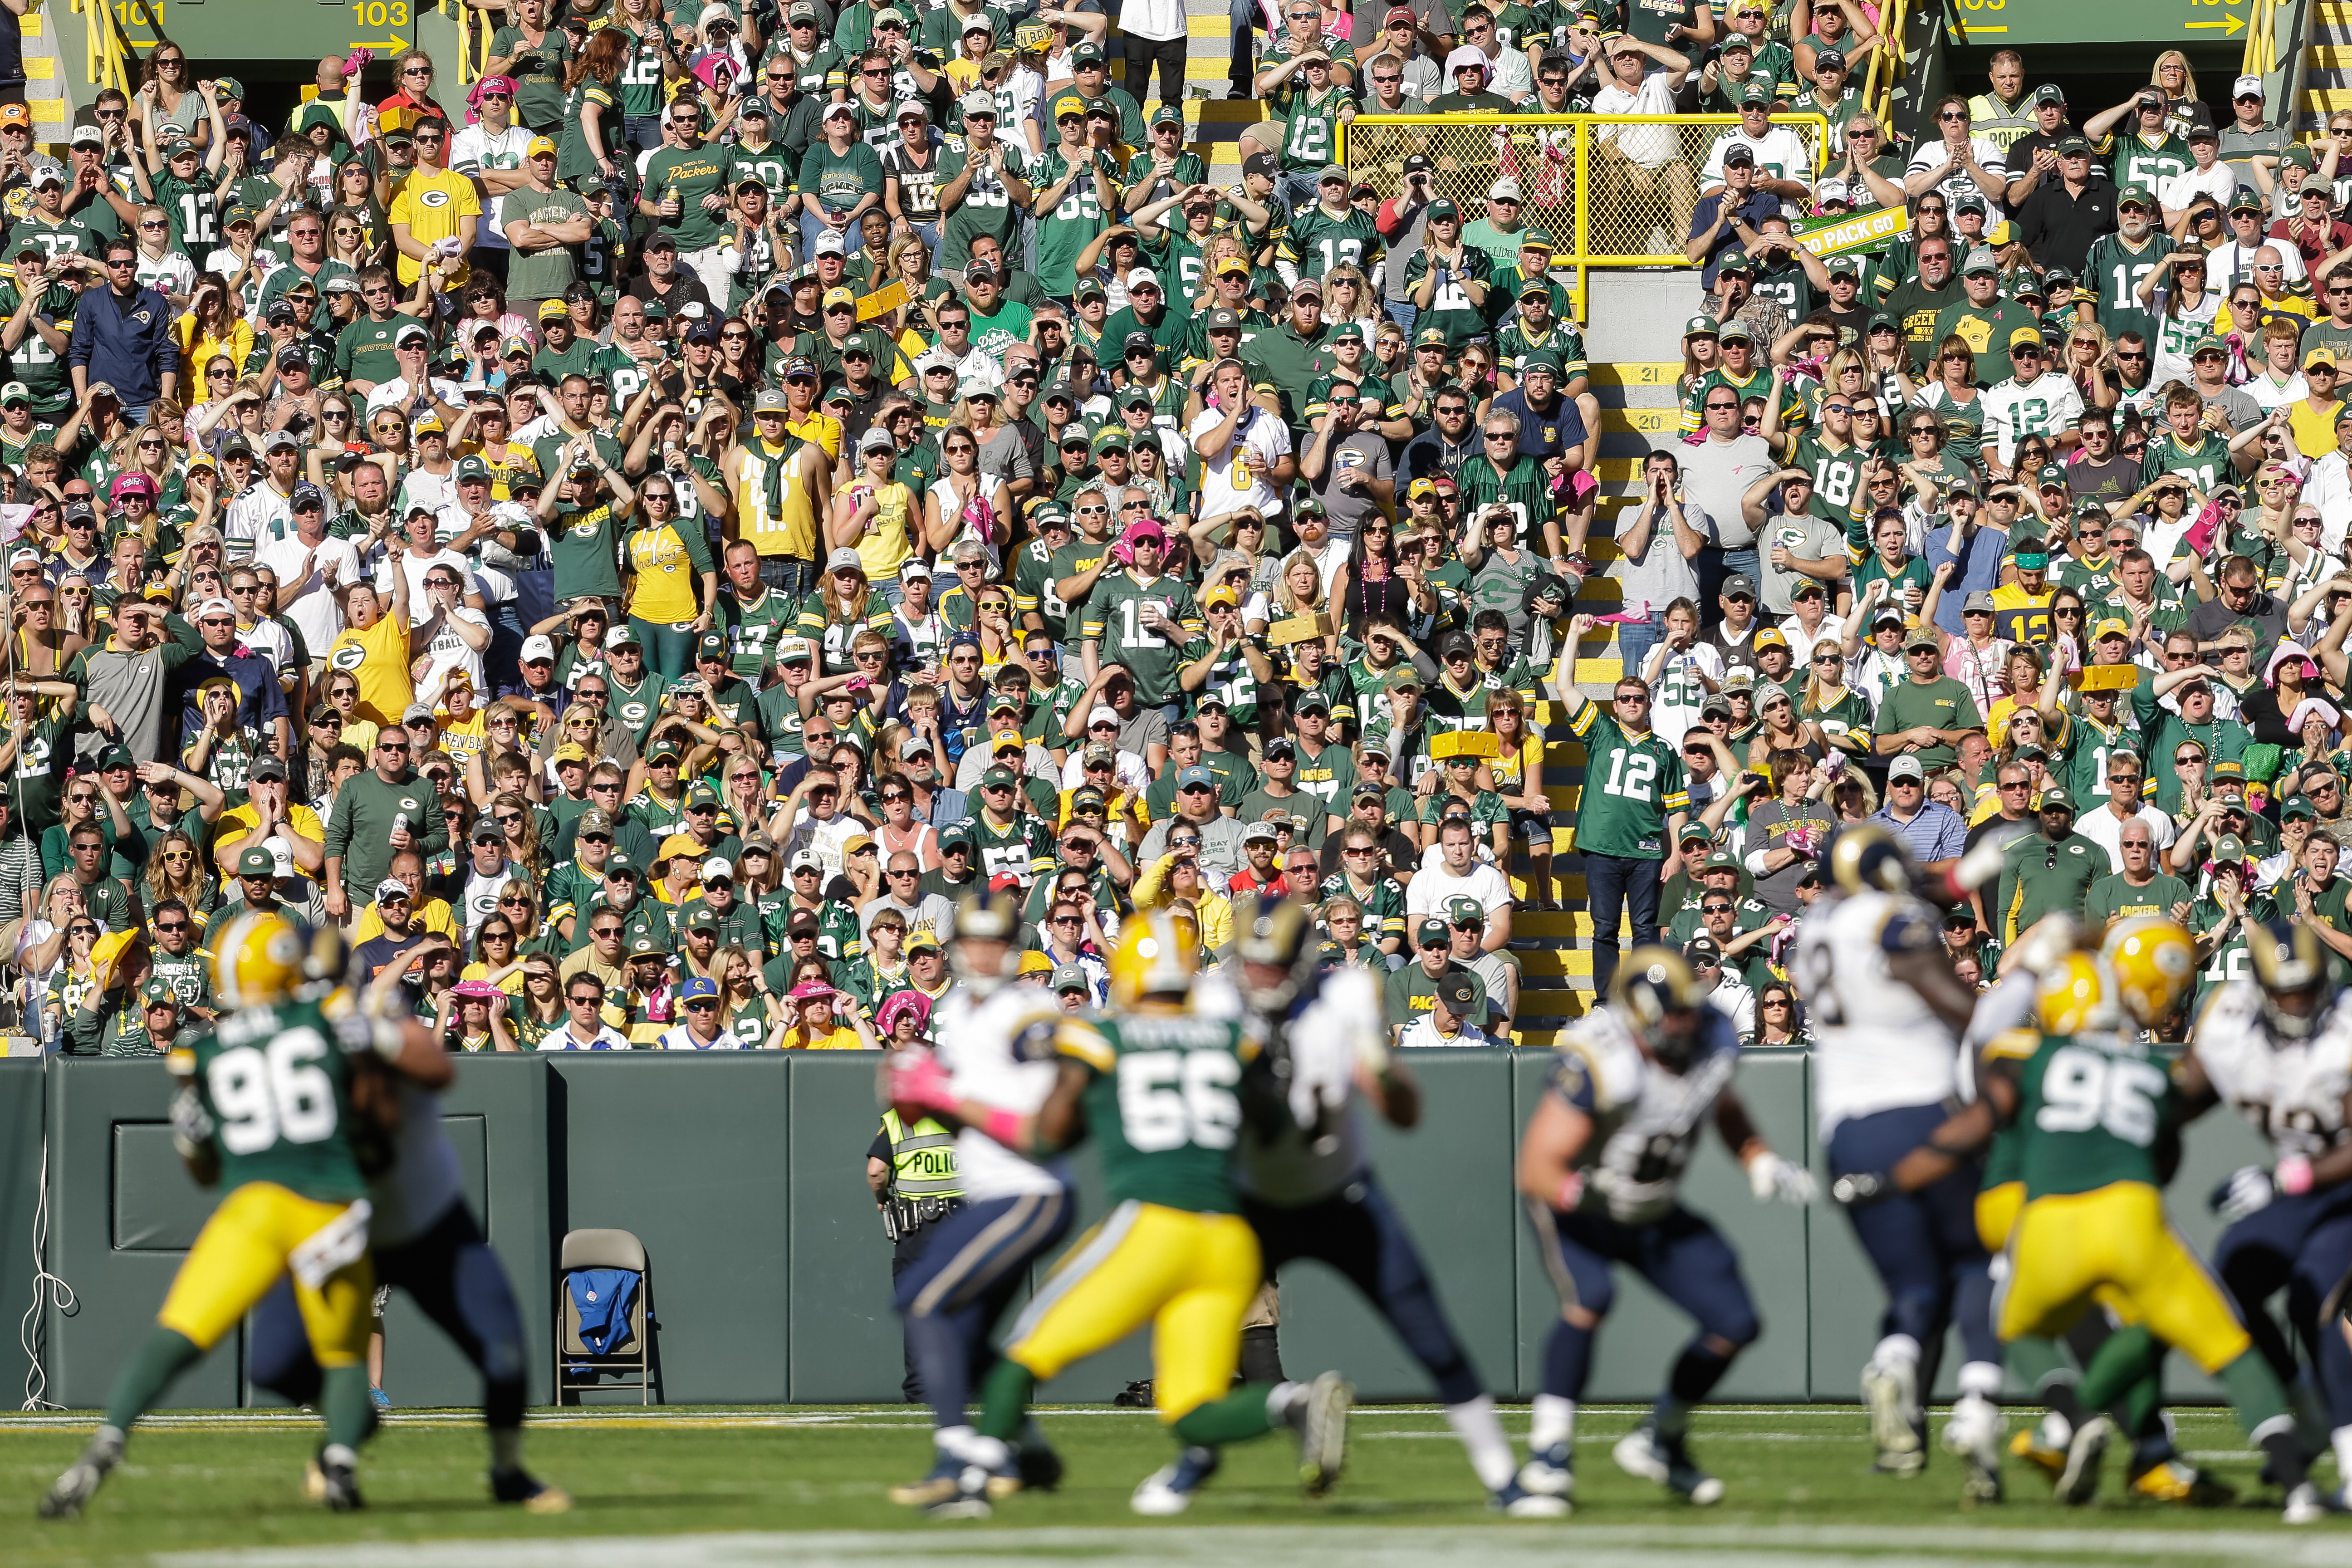 St Louis Rams at Green Bay Packers in 2015